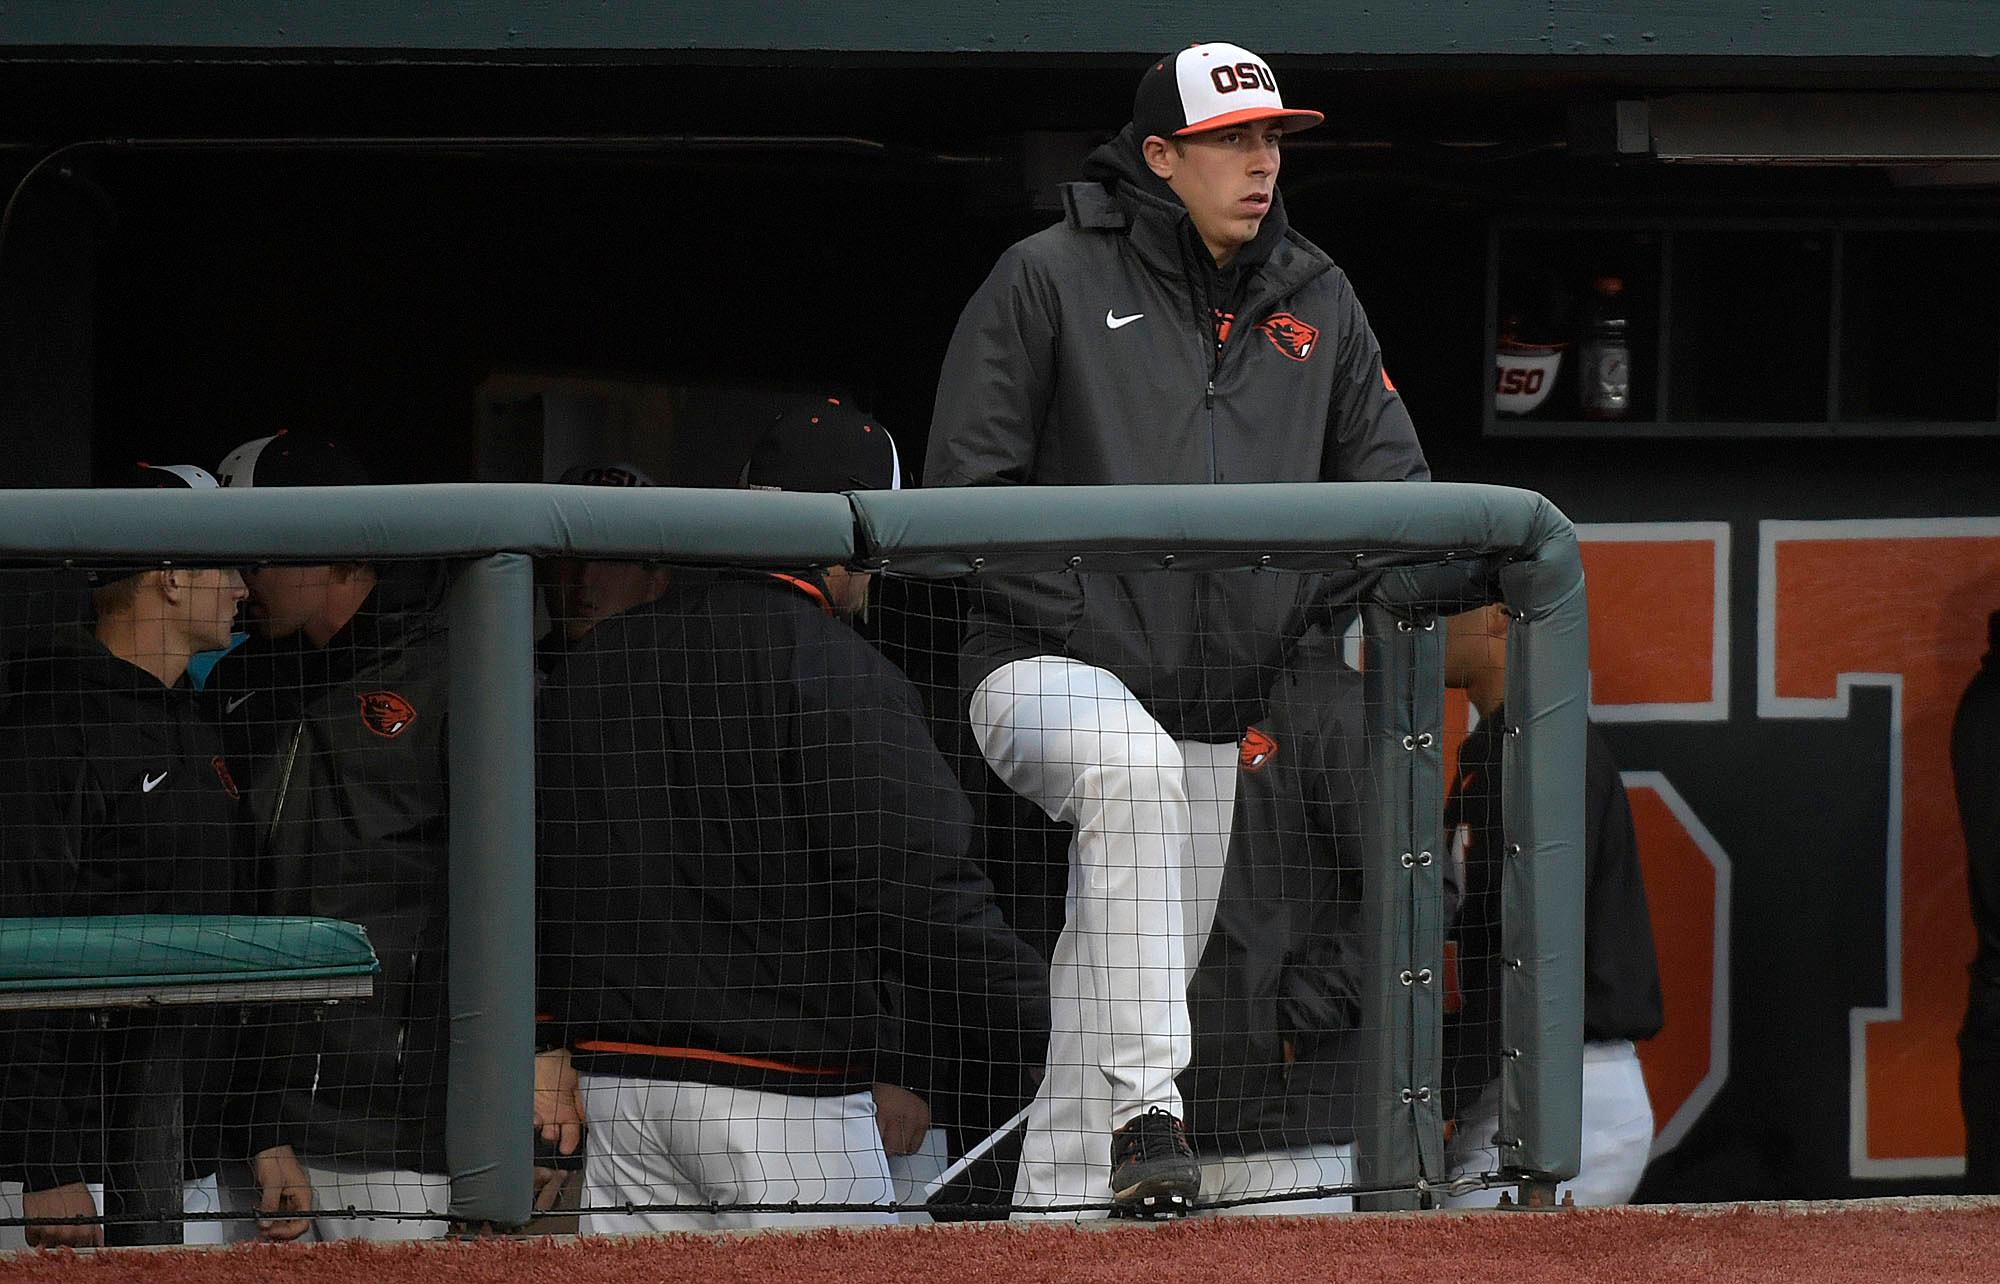 Oregon State's Luke Heimlich watches the team play Vanderbilt during an NCAA college baseball tournament super regional game Friday, June 9, 2017, in Corvallis, Ore. (Mark Ylen/Albany Democrat-Herald via AP)